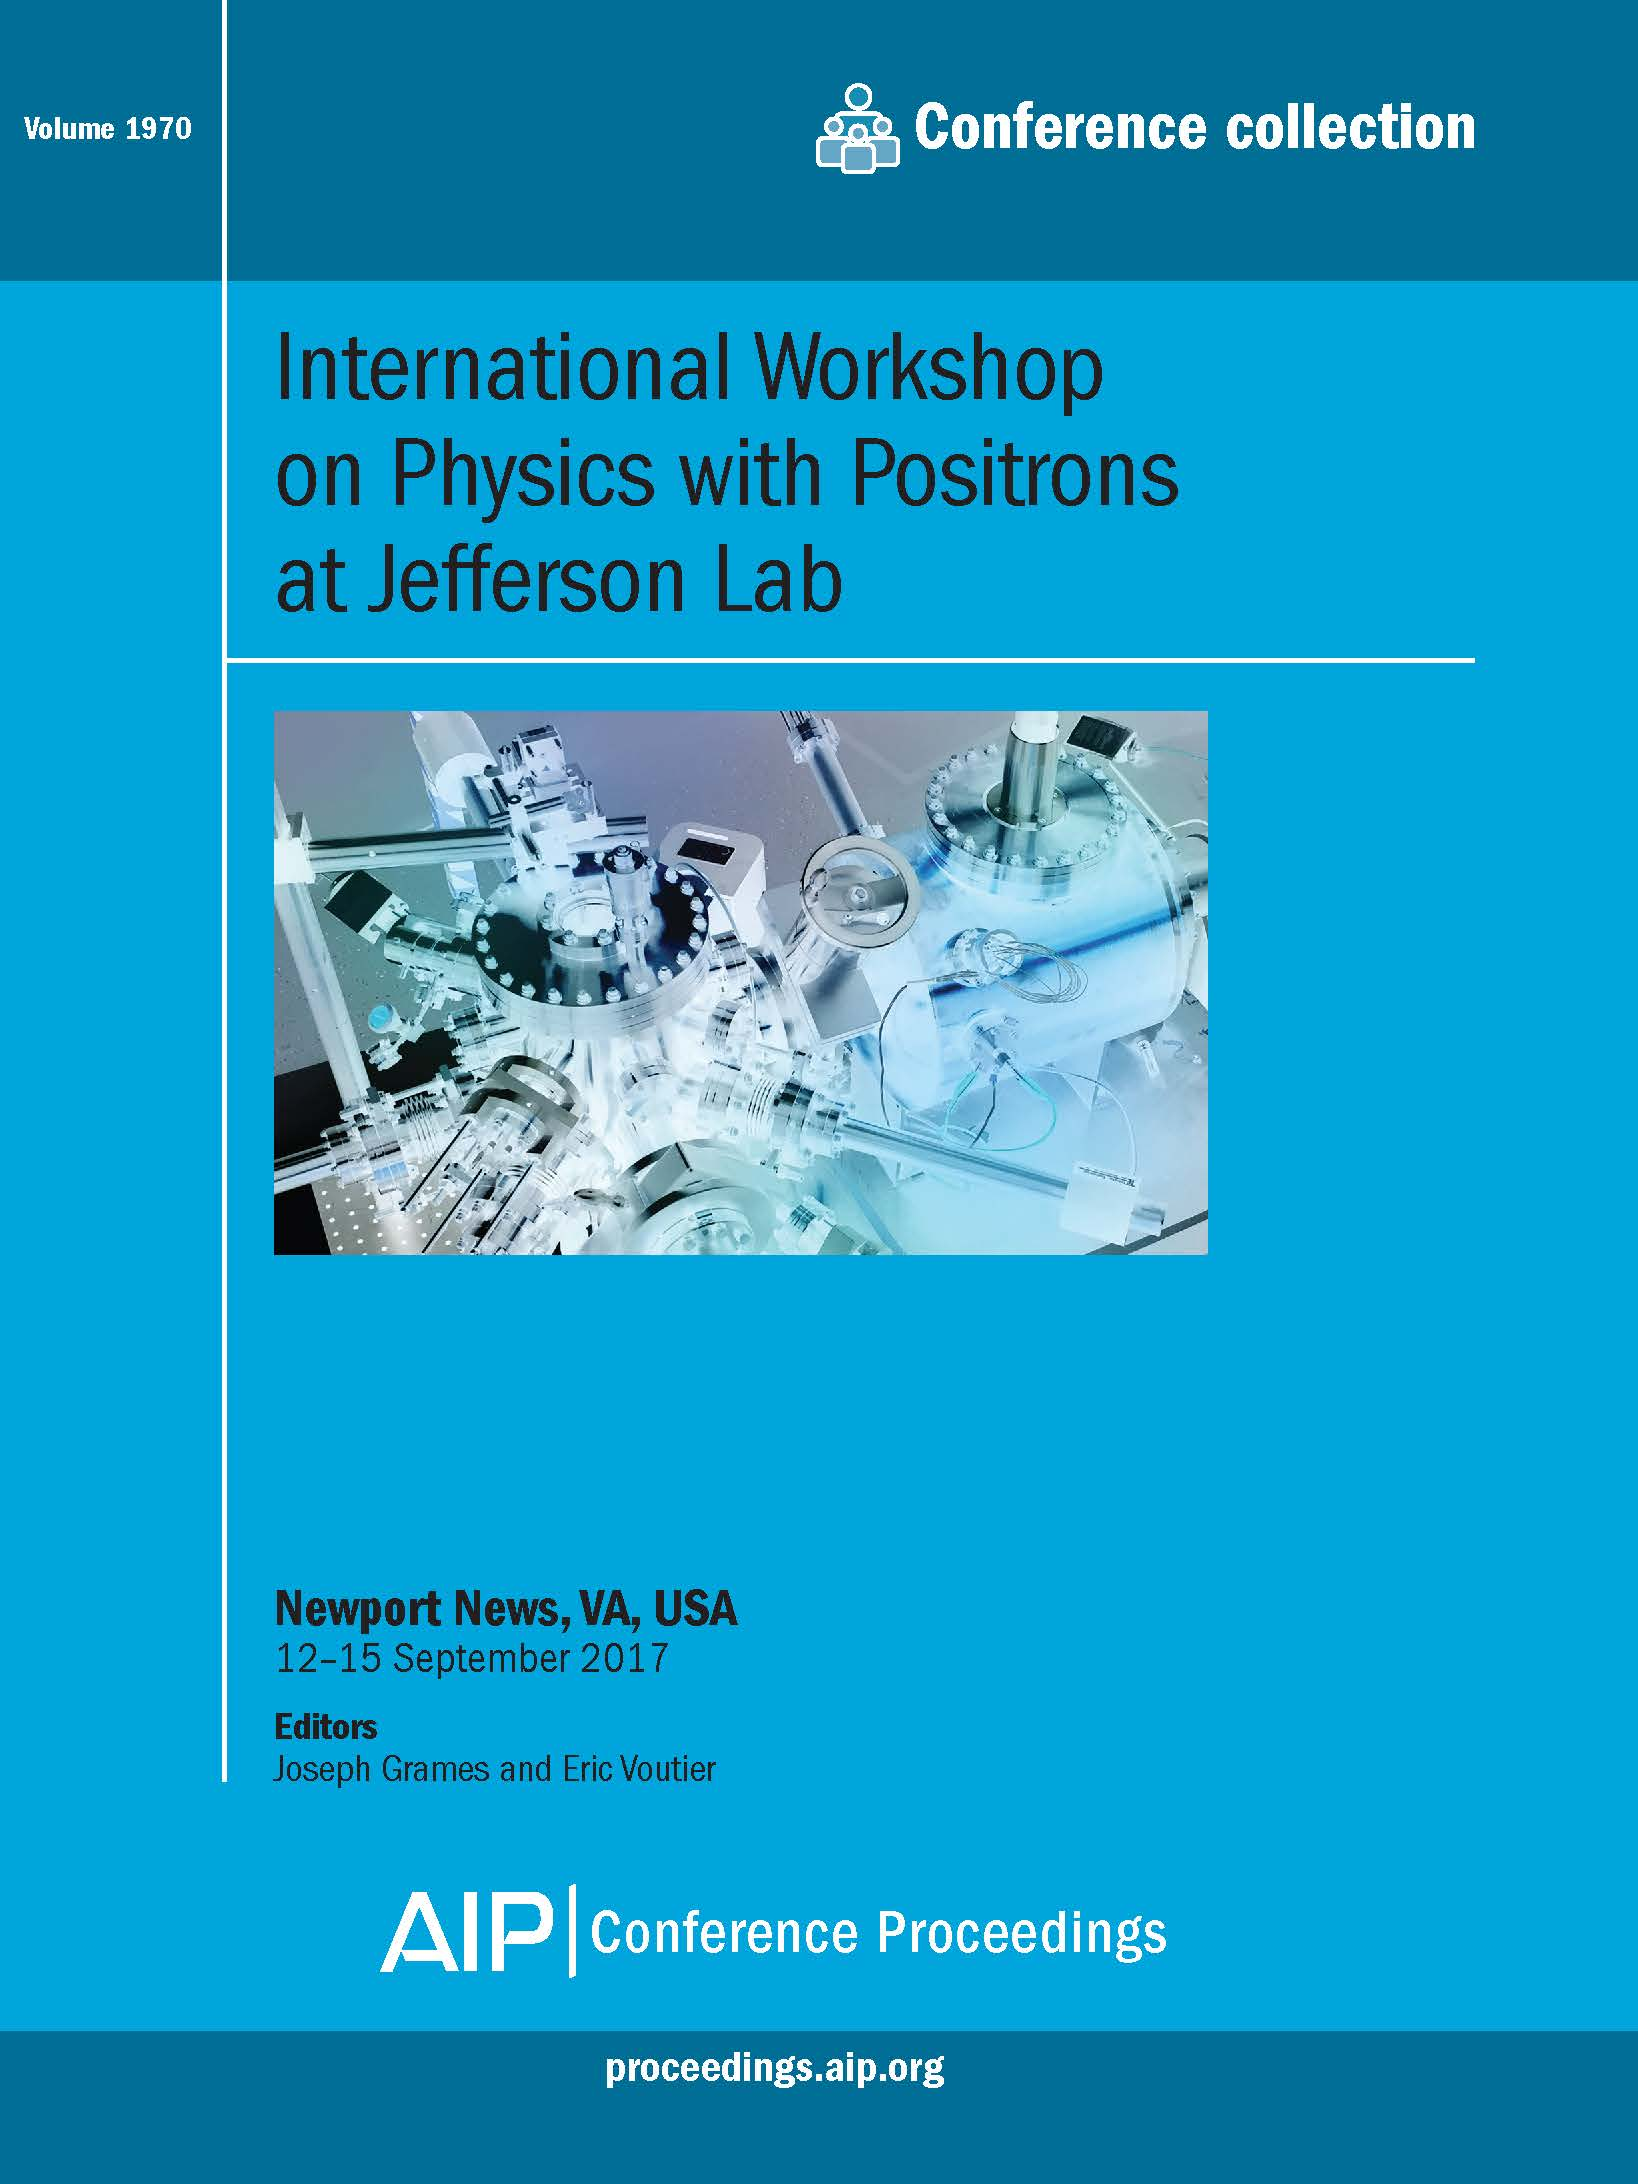 Volume 1970: International Workshop on Physics with Positrons at